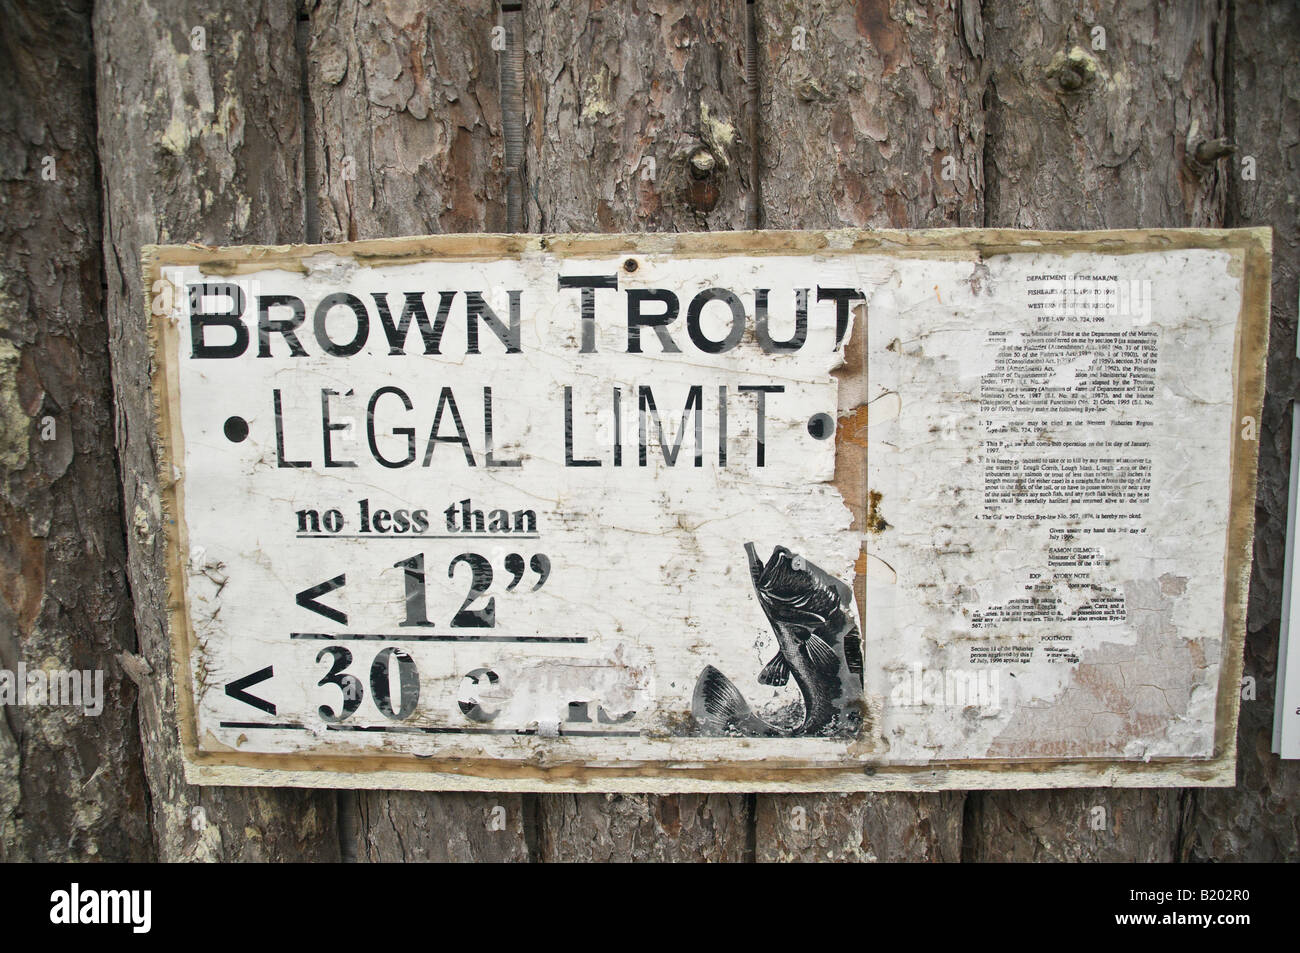 Sign showing legal limit for brown trout - Stock Image